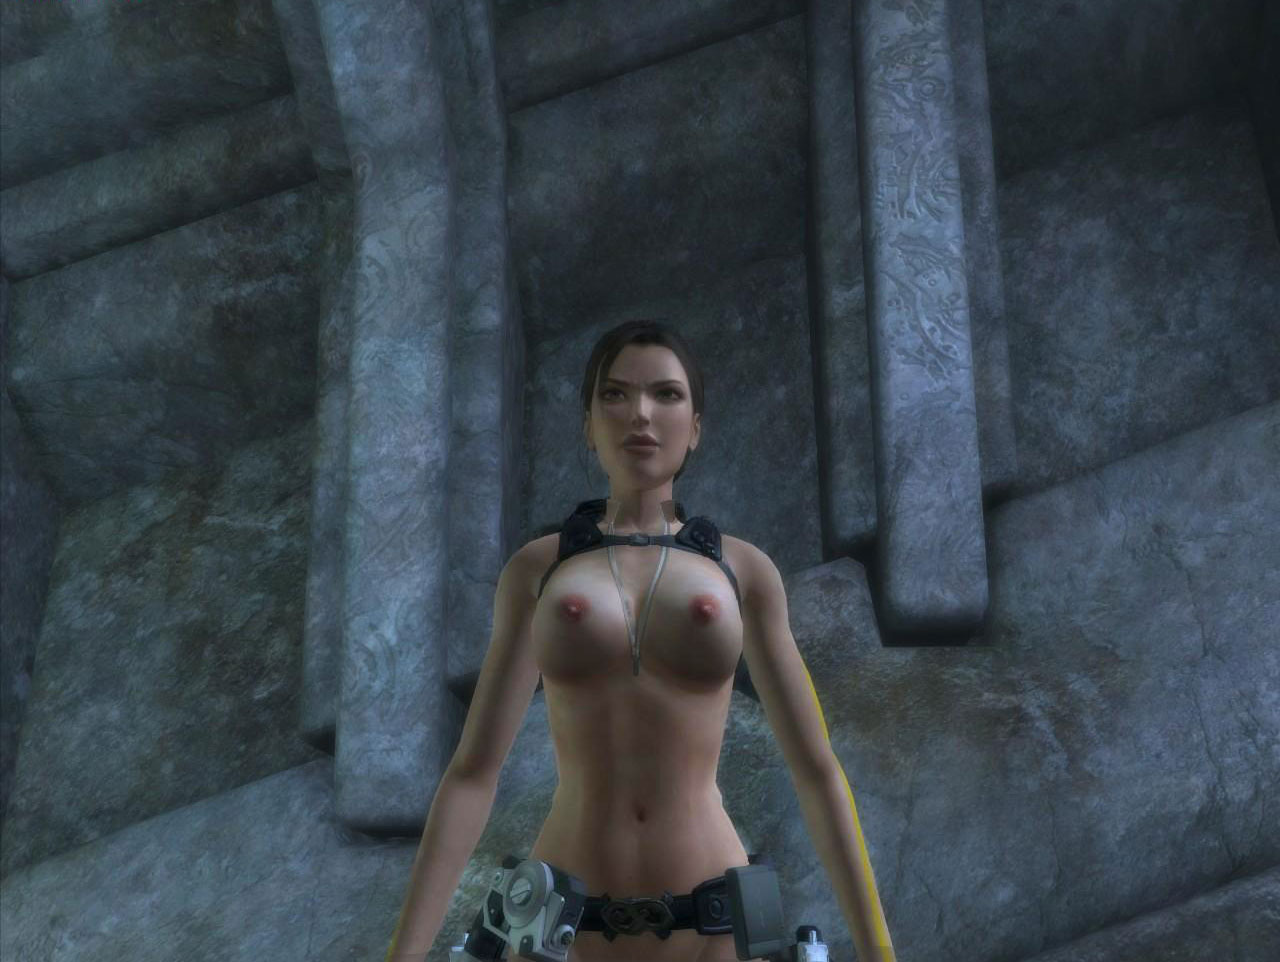 Tombraider 2013 nude patch sexual images